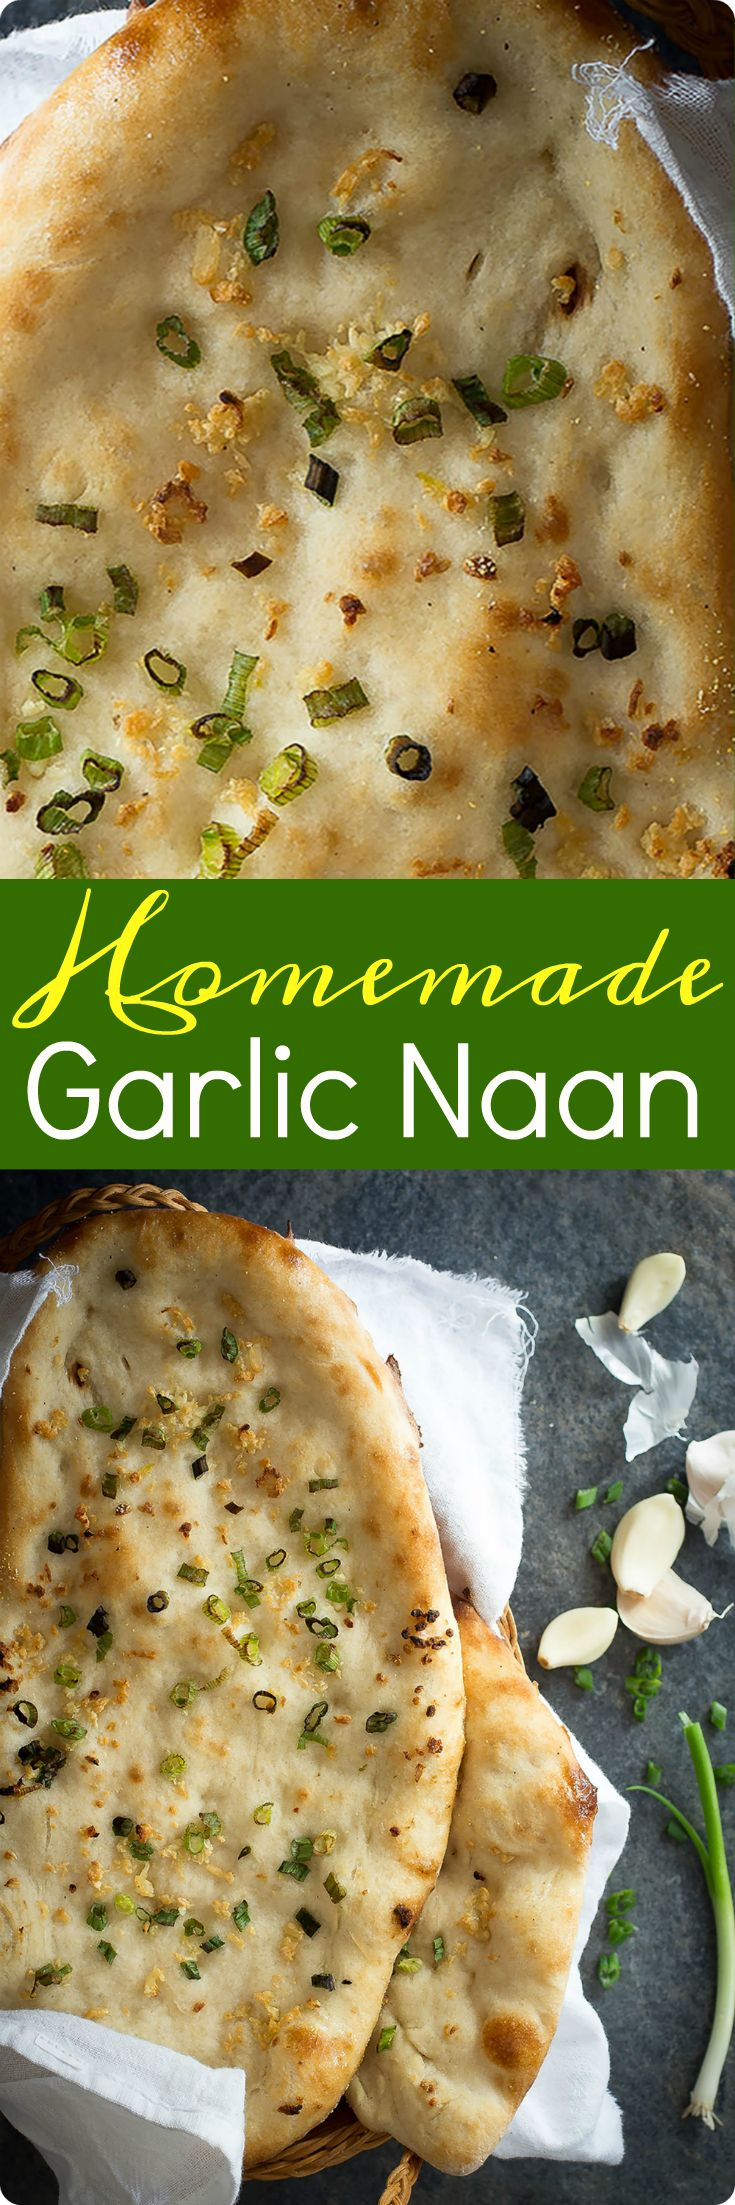 A chewy homemade naan bread covered in fresh minced garlic and green onions. This is the perfect accompaniment to any spicy meal. Find recipe at redstaryeast.com.